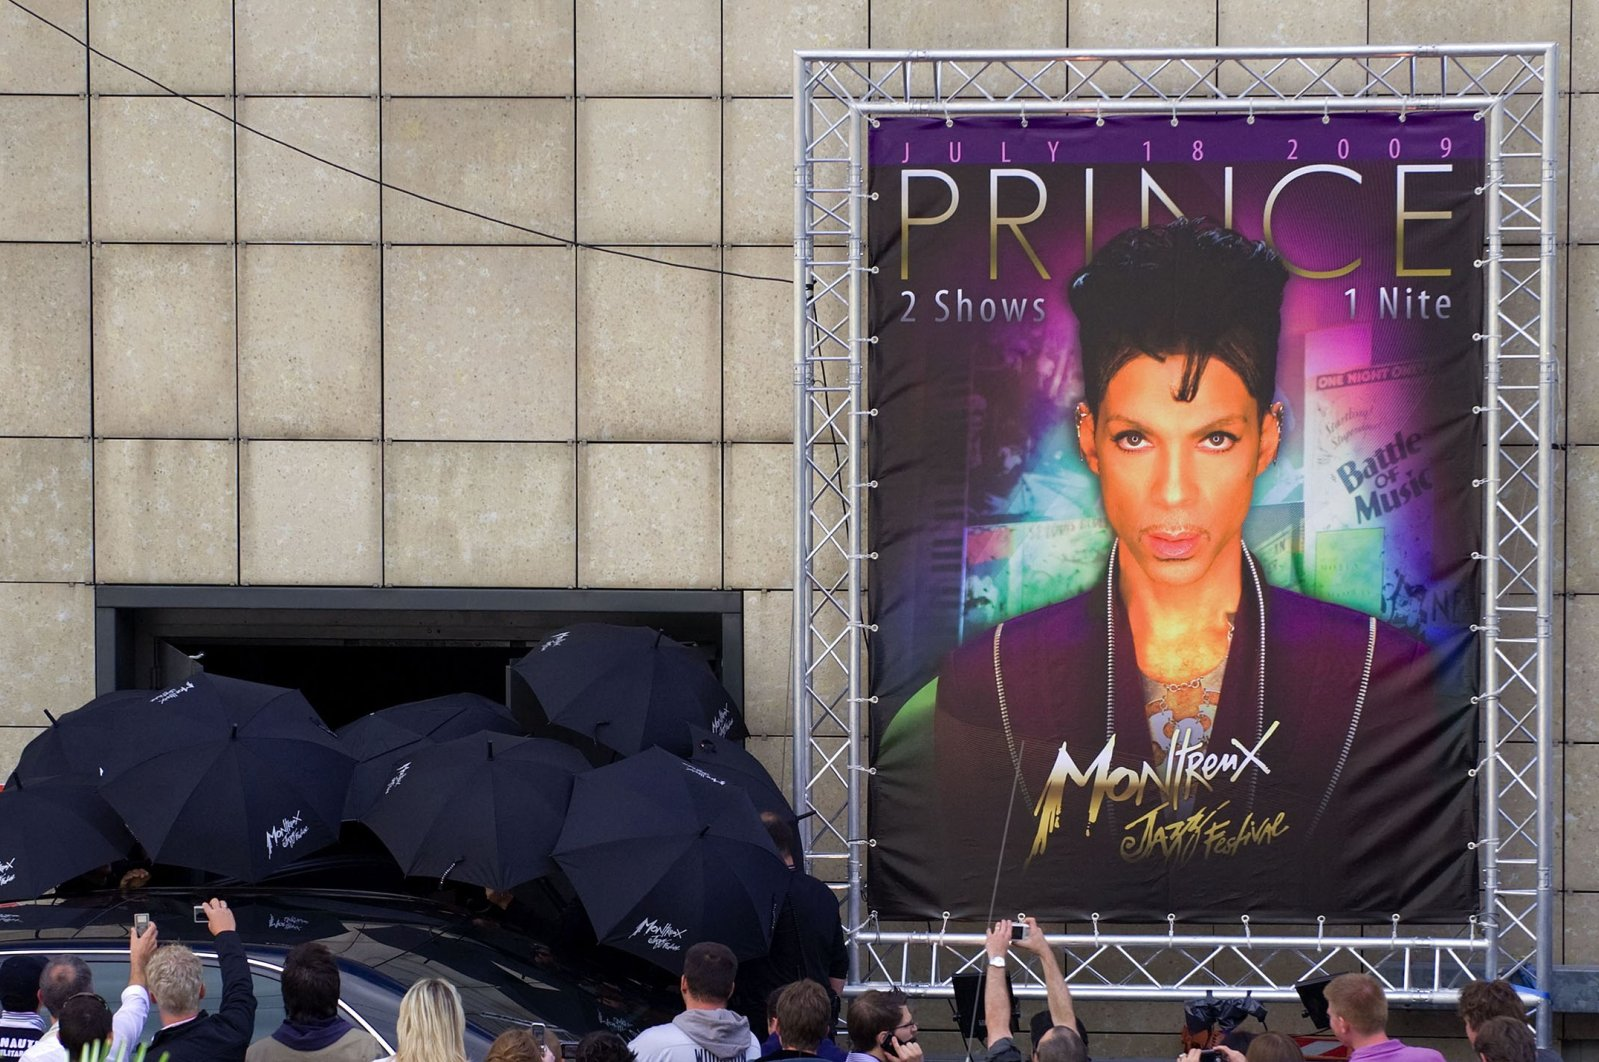 Security staff hold umbrellas to hide U.S. singer Prince close to a giant poster of the entertainer as the pop maverick leaves the Auditorium after his sound check in Lausanne, Switzerland, July 18, 2009. (AFP Photo)